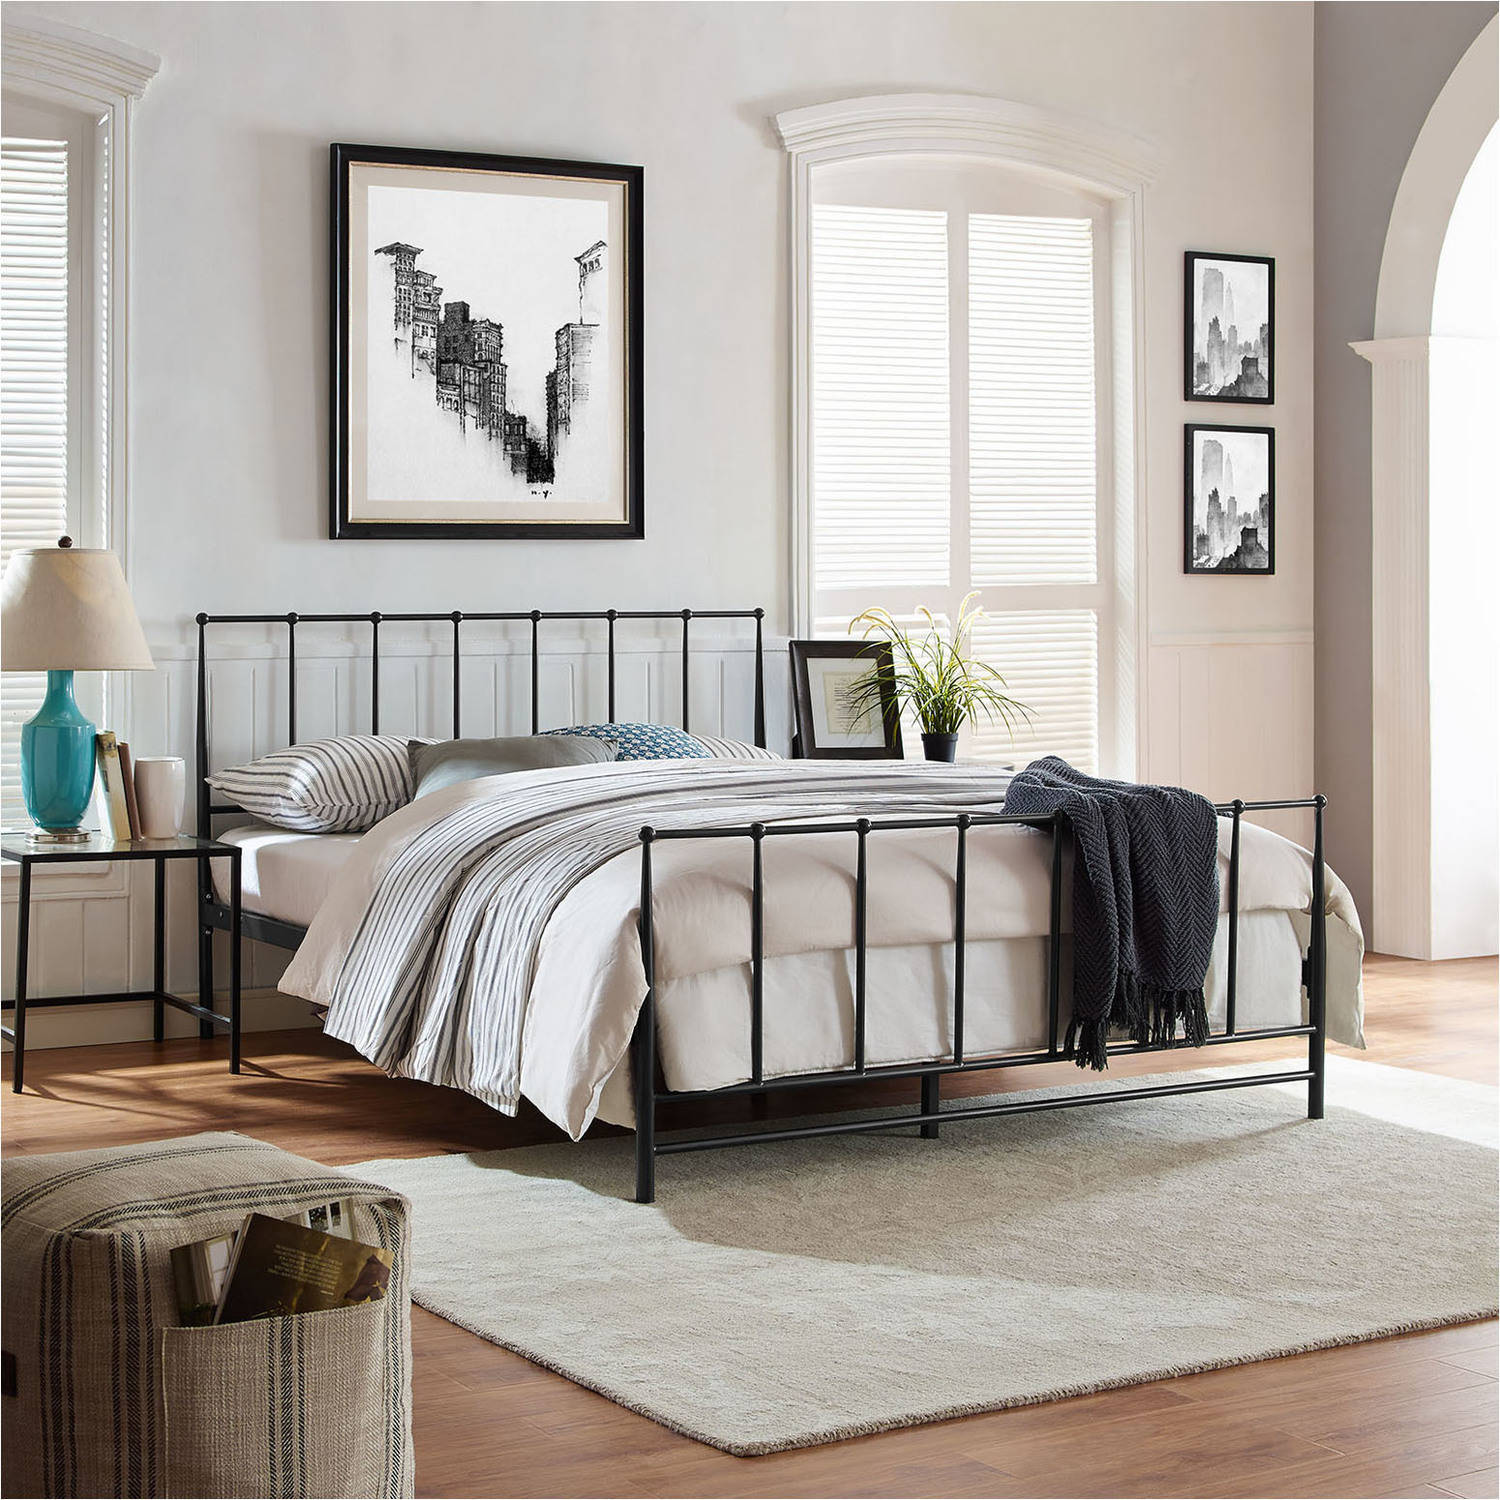 Modway Estate Queen Steel Platform Bed, Multiple Colors